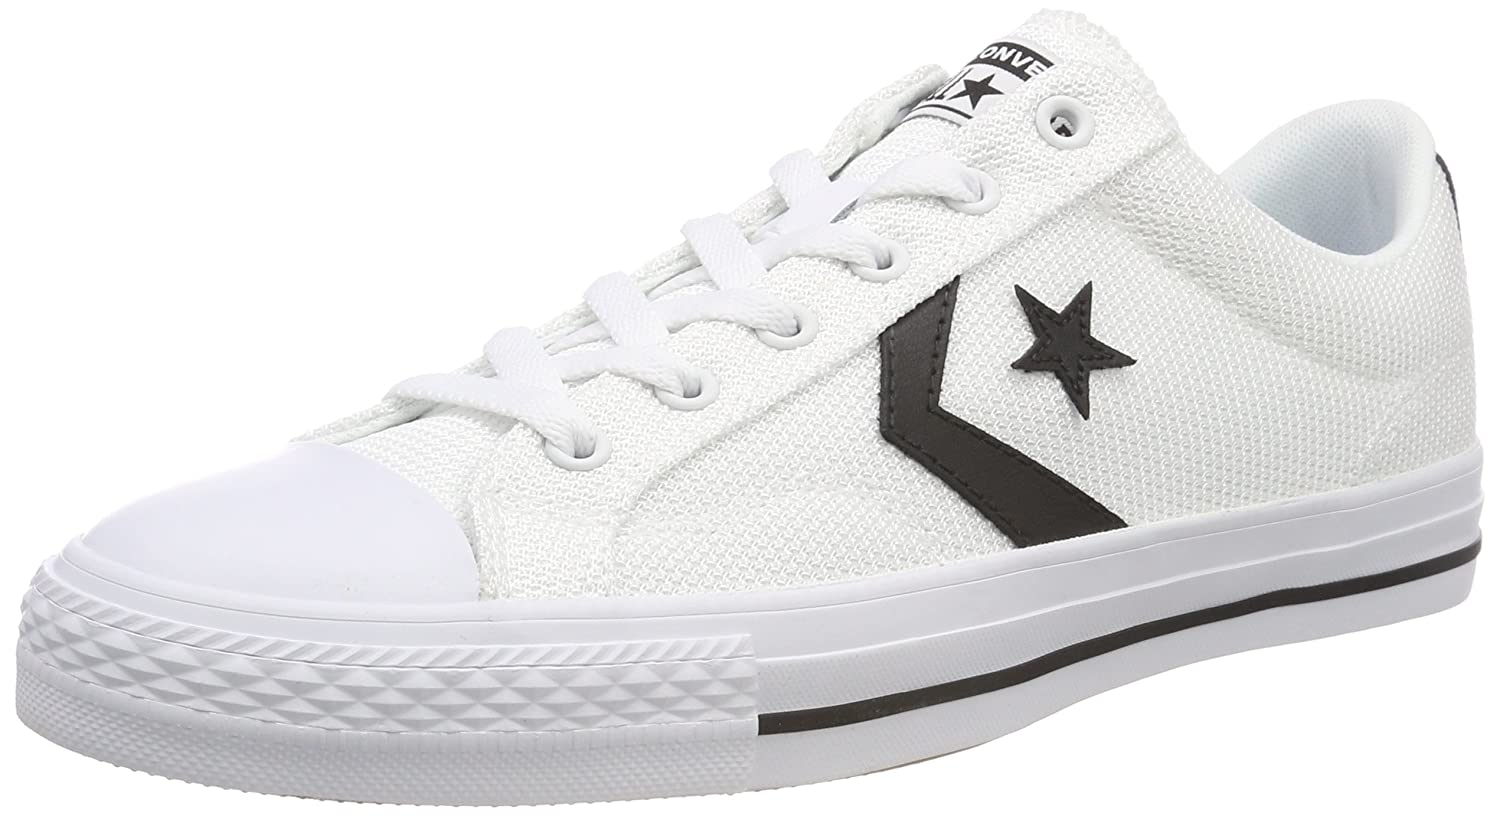 TALLA 39 EU. Converse Star Player Ox Black/White, Zapatillas Unisex Adulto